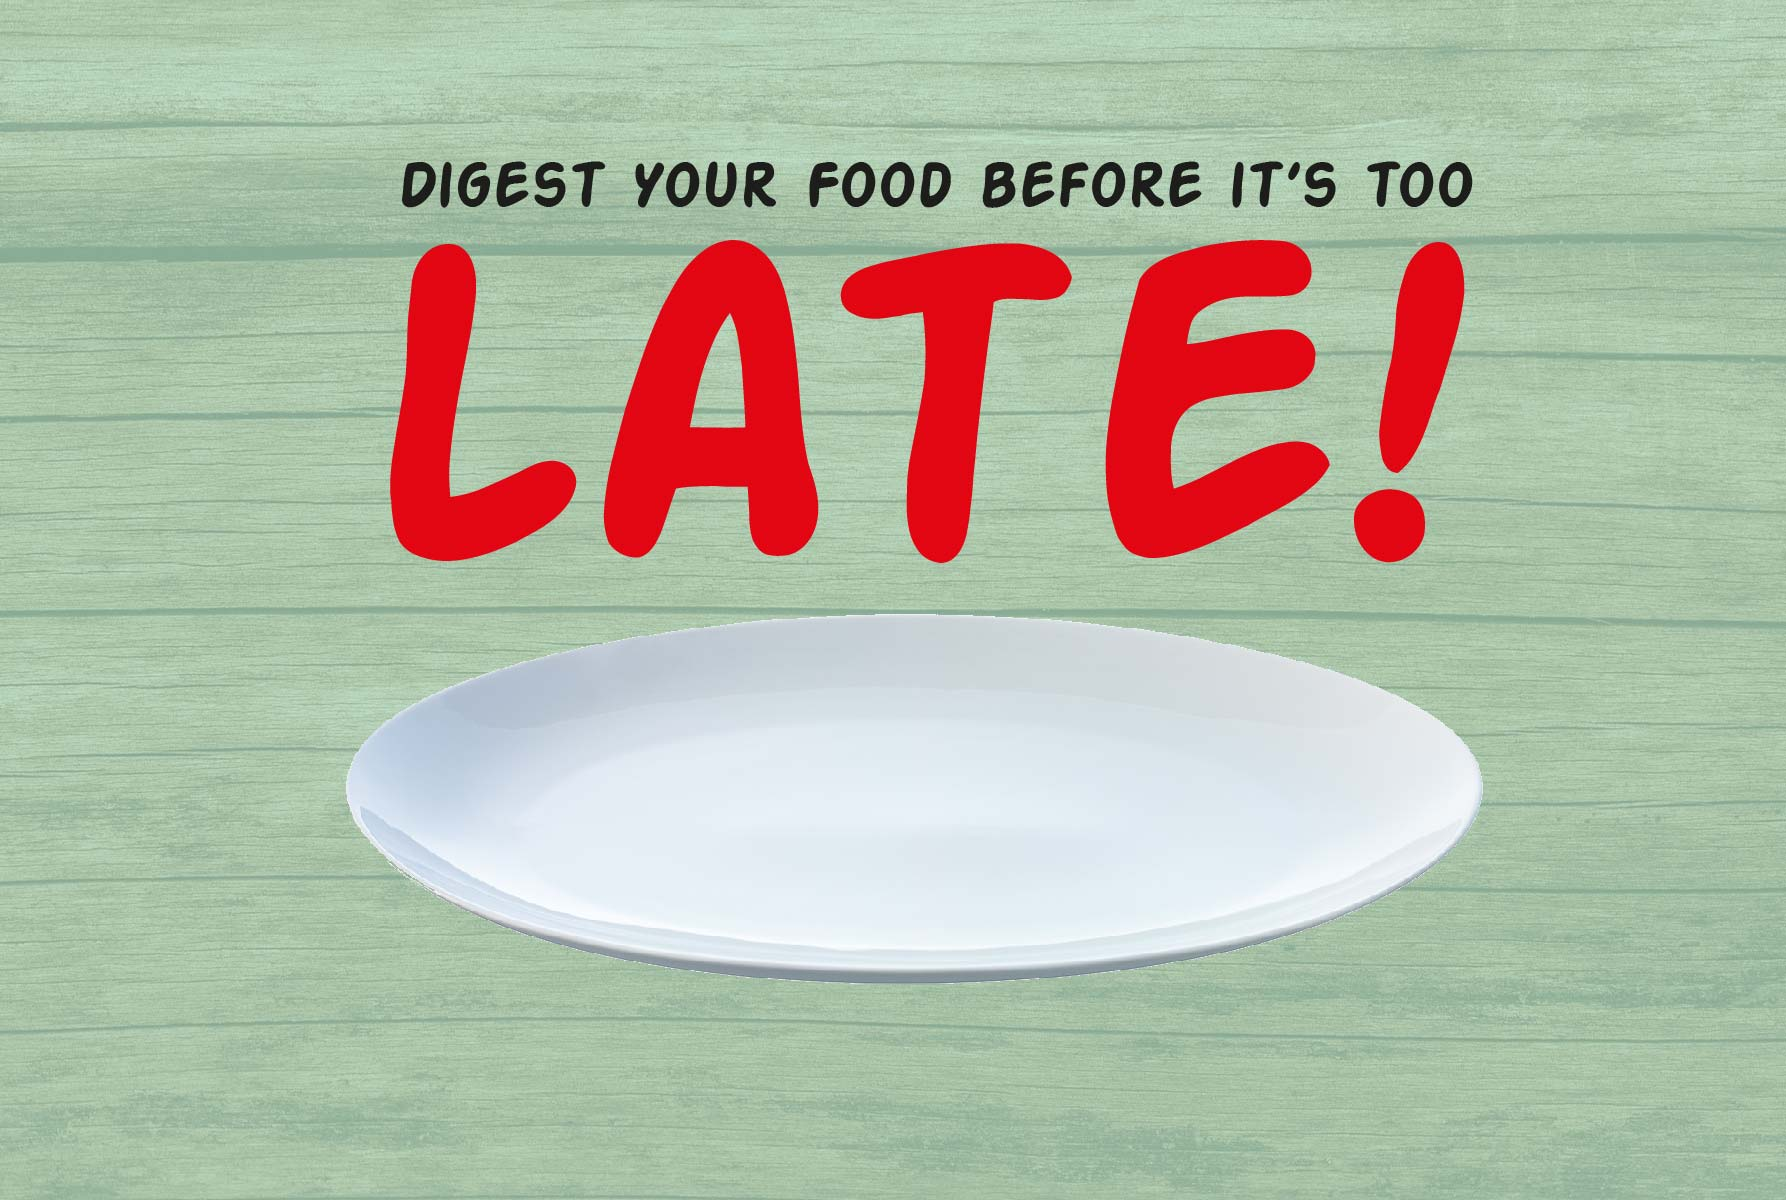 Digest Your Food before it